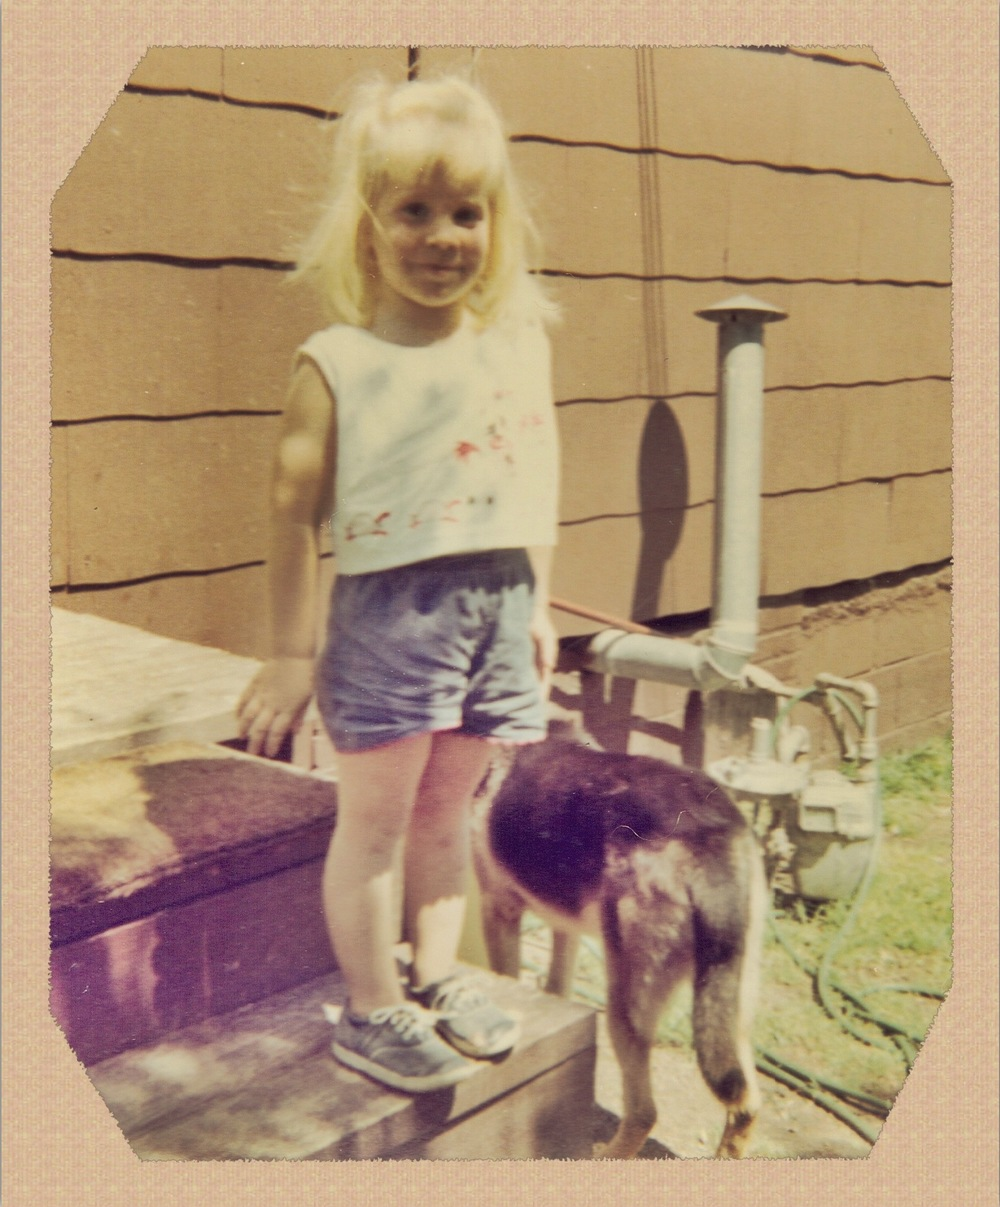 I came into this world loving dogs. Here is one of the only photos I have of me and King, a German Shepherd we lost during a thunderstorm.